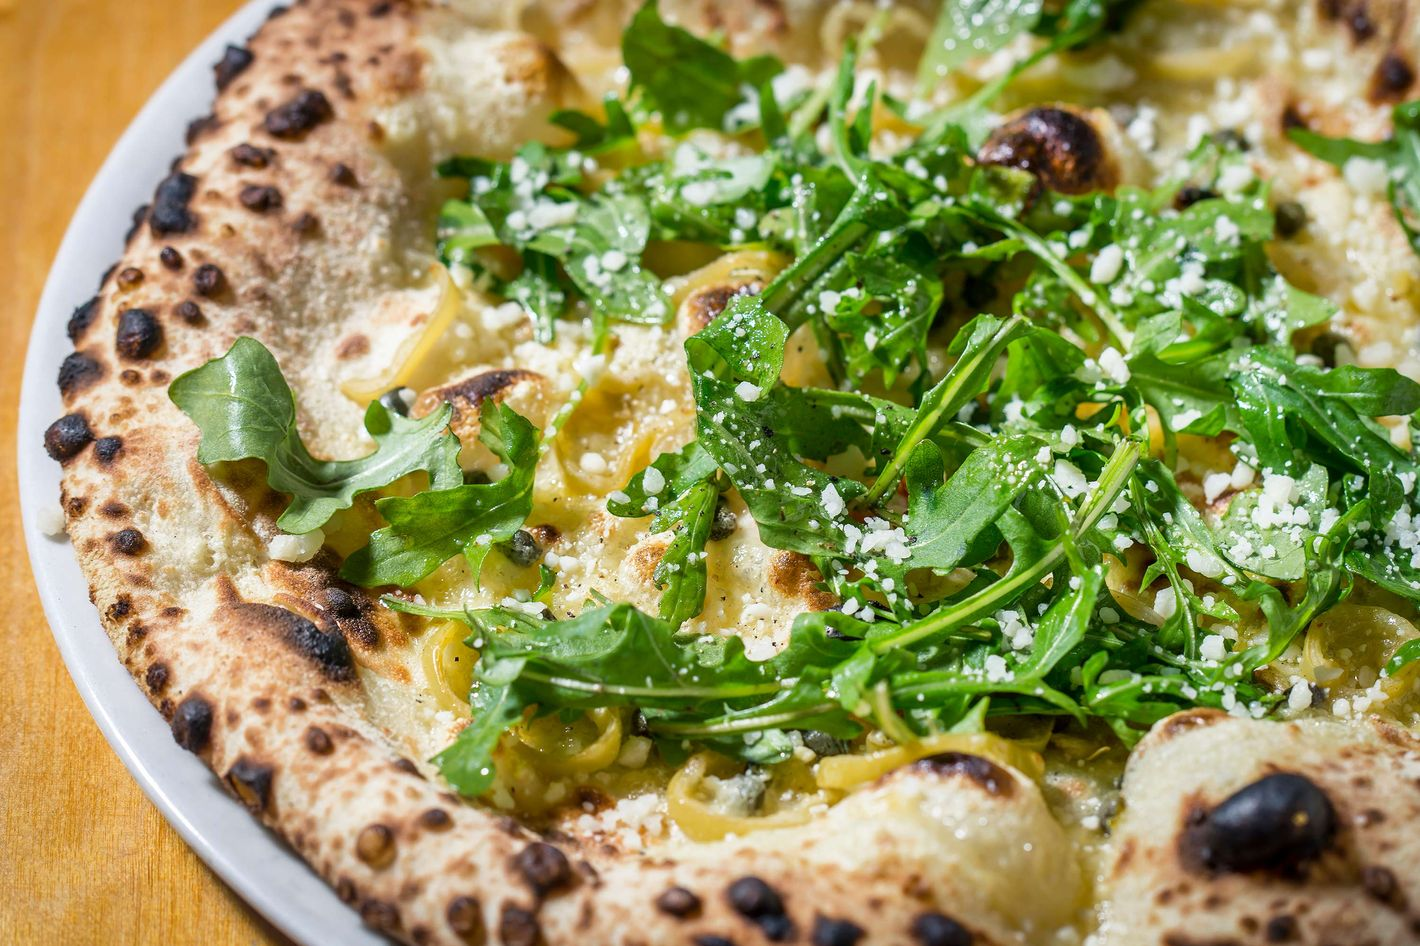 Salty, Hot and Bitter Love: wax peppers, fontina, capers, arugula, Pecorino Romano.